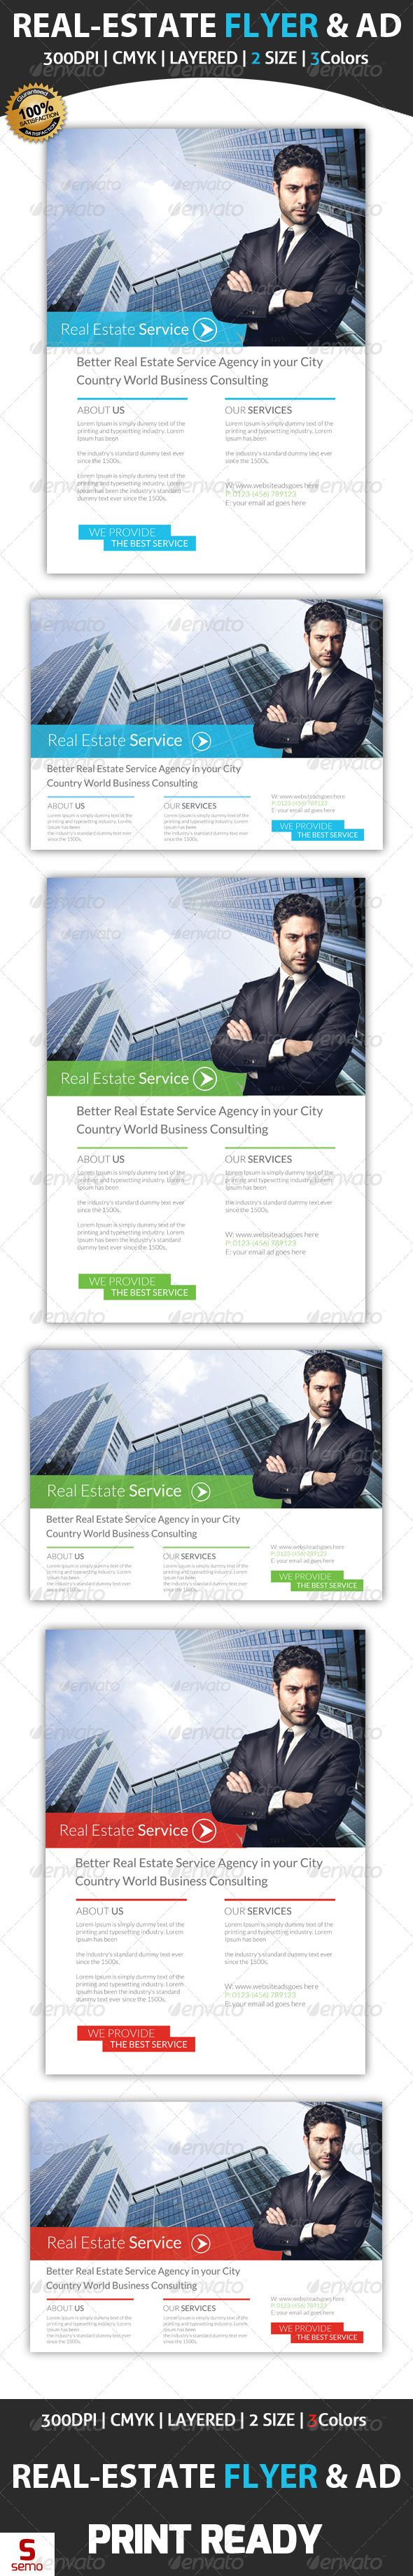 best images about print ads real estate real real estate service flyer ad template